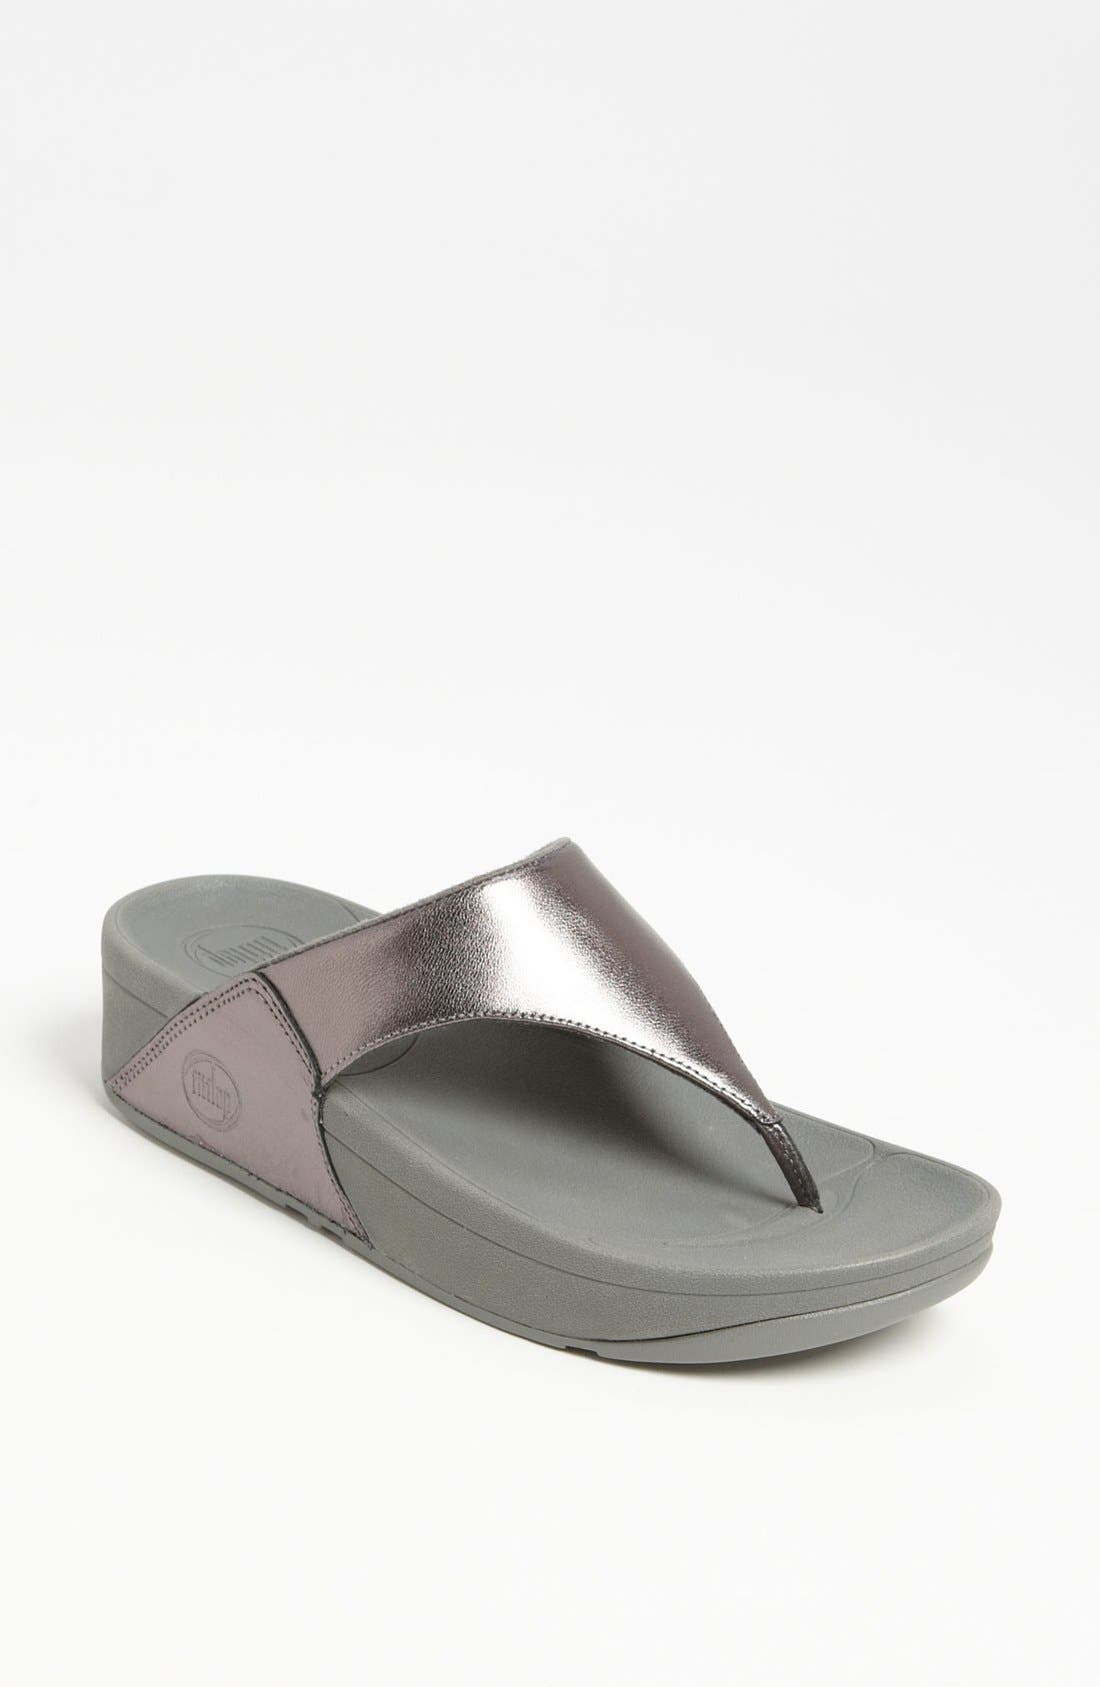 Alternate Image 1 Selected - FitFlop Lulu Sandal